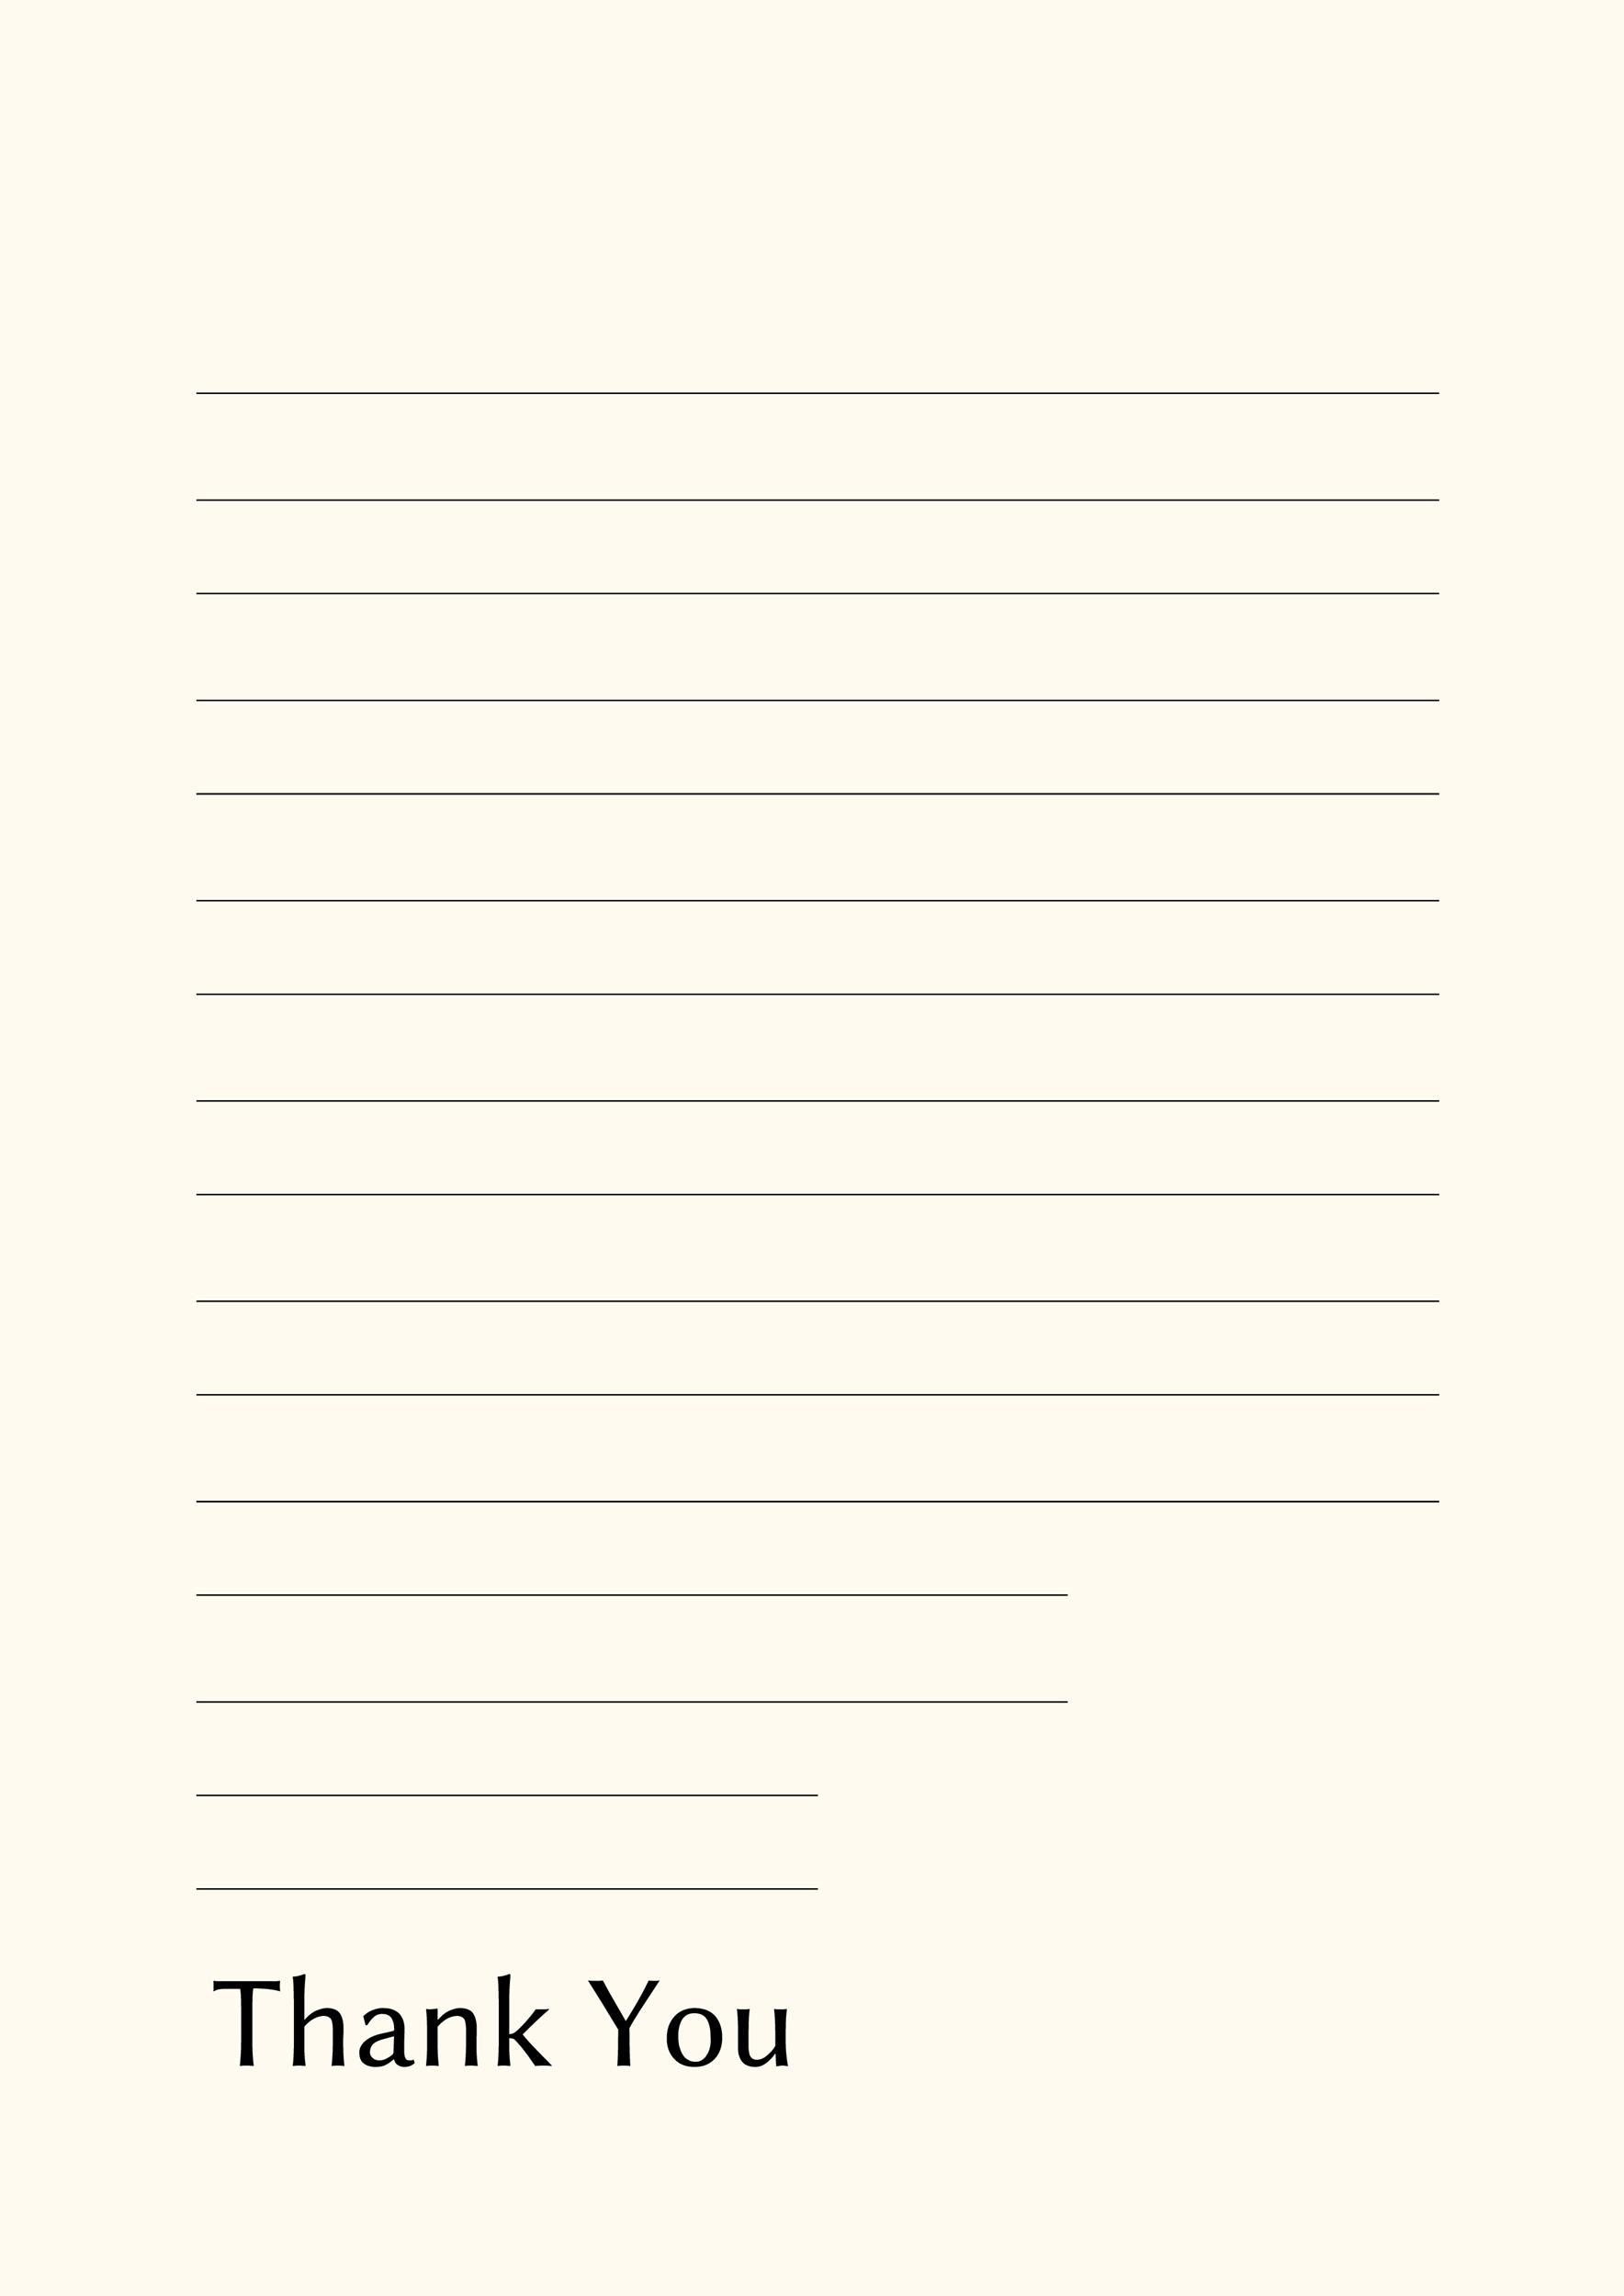 Free lined paper template 17